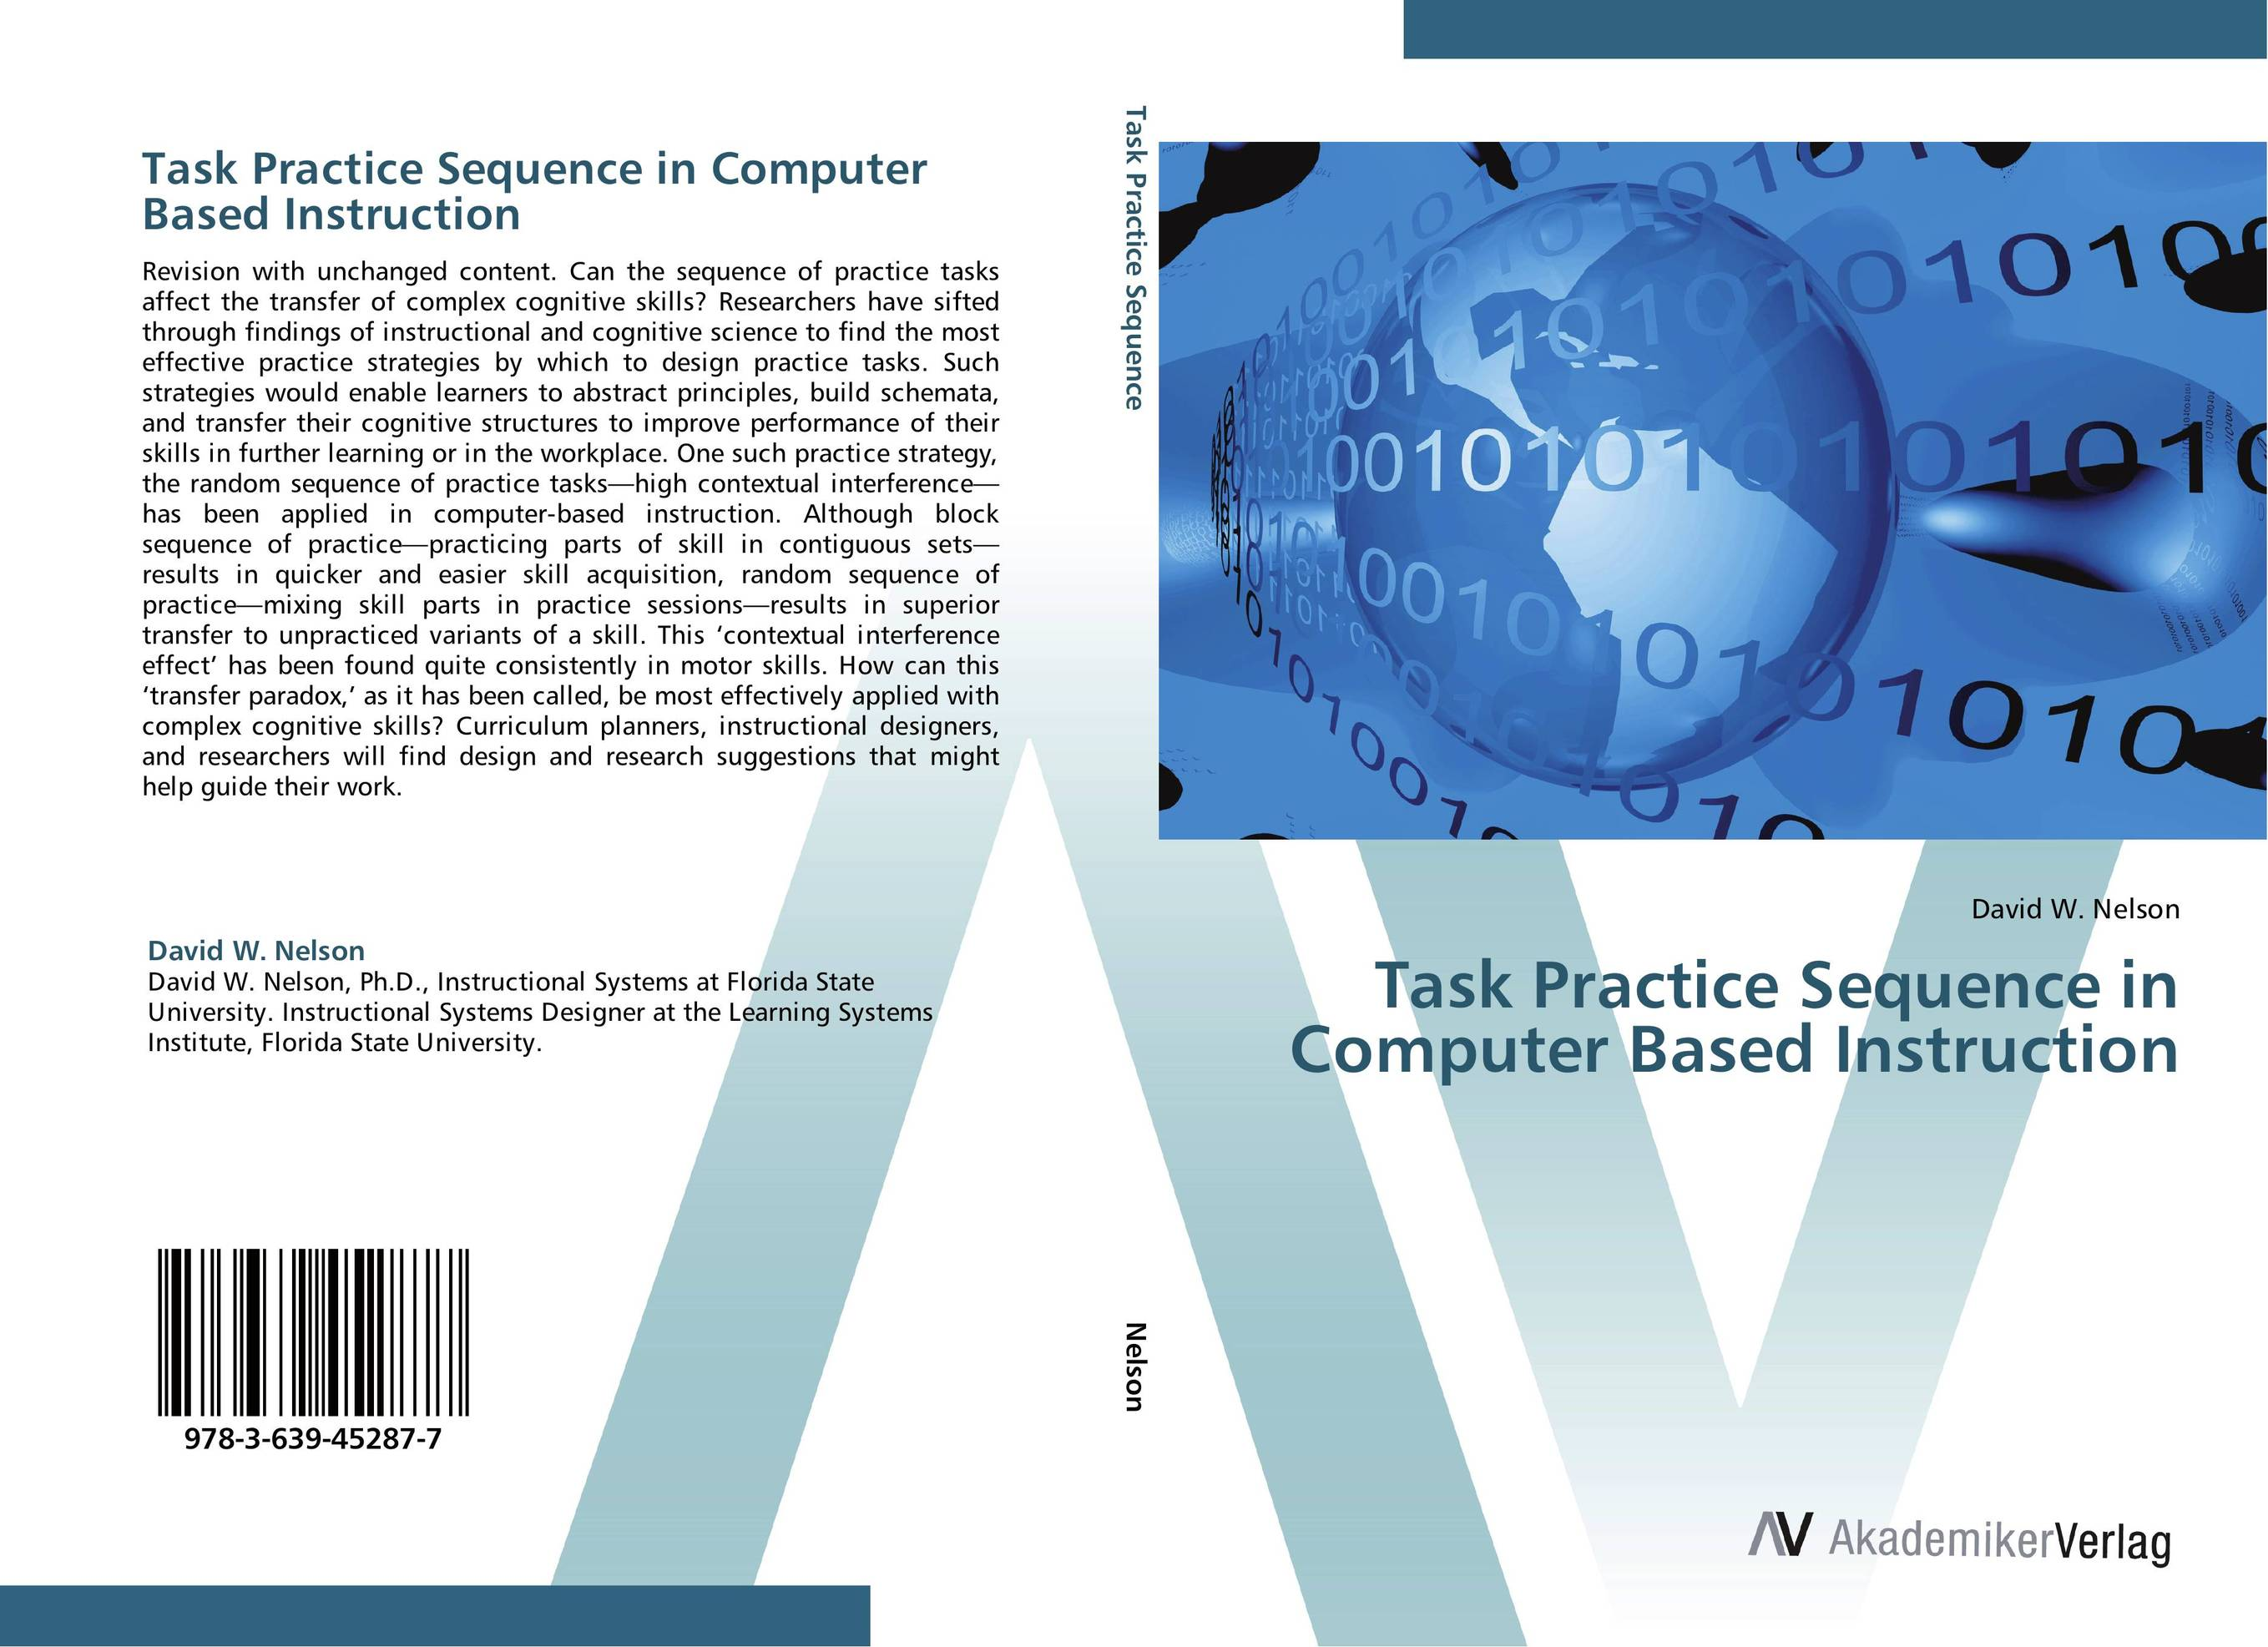 Task Practice Sequence in Computer Based Instruction iso surgical suture practice module new skin suture skill practice model